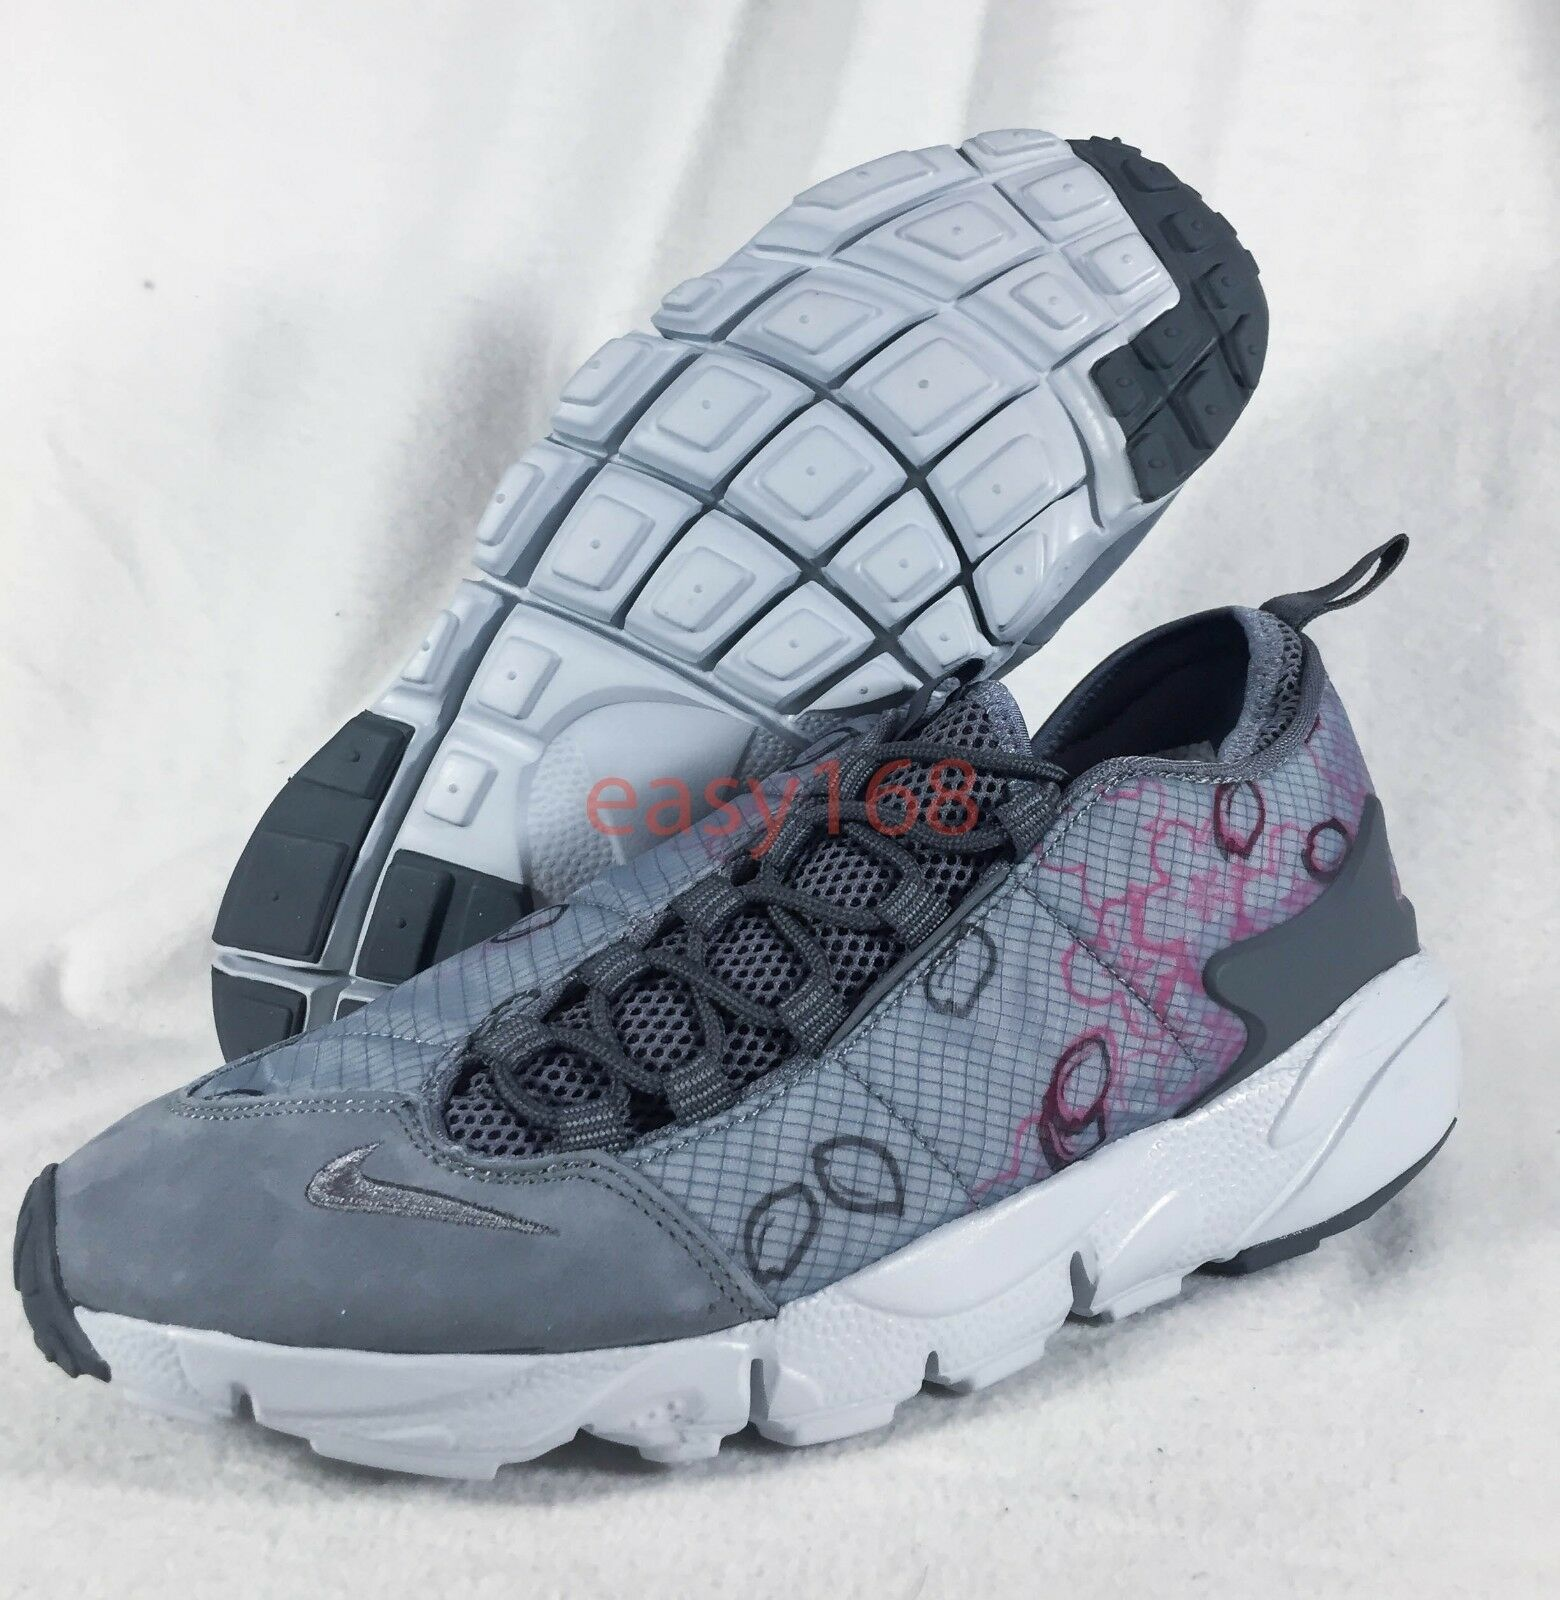 NEW NIKE AIR FOOTSCAPE NM PREMIUM Sz 9.5 QS SAKURA NDM GREY 43 PINK 8846786 NDM SAKURA 337121